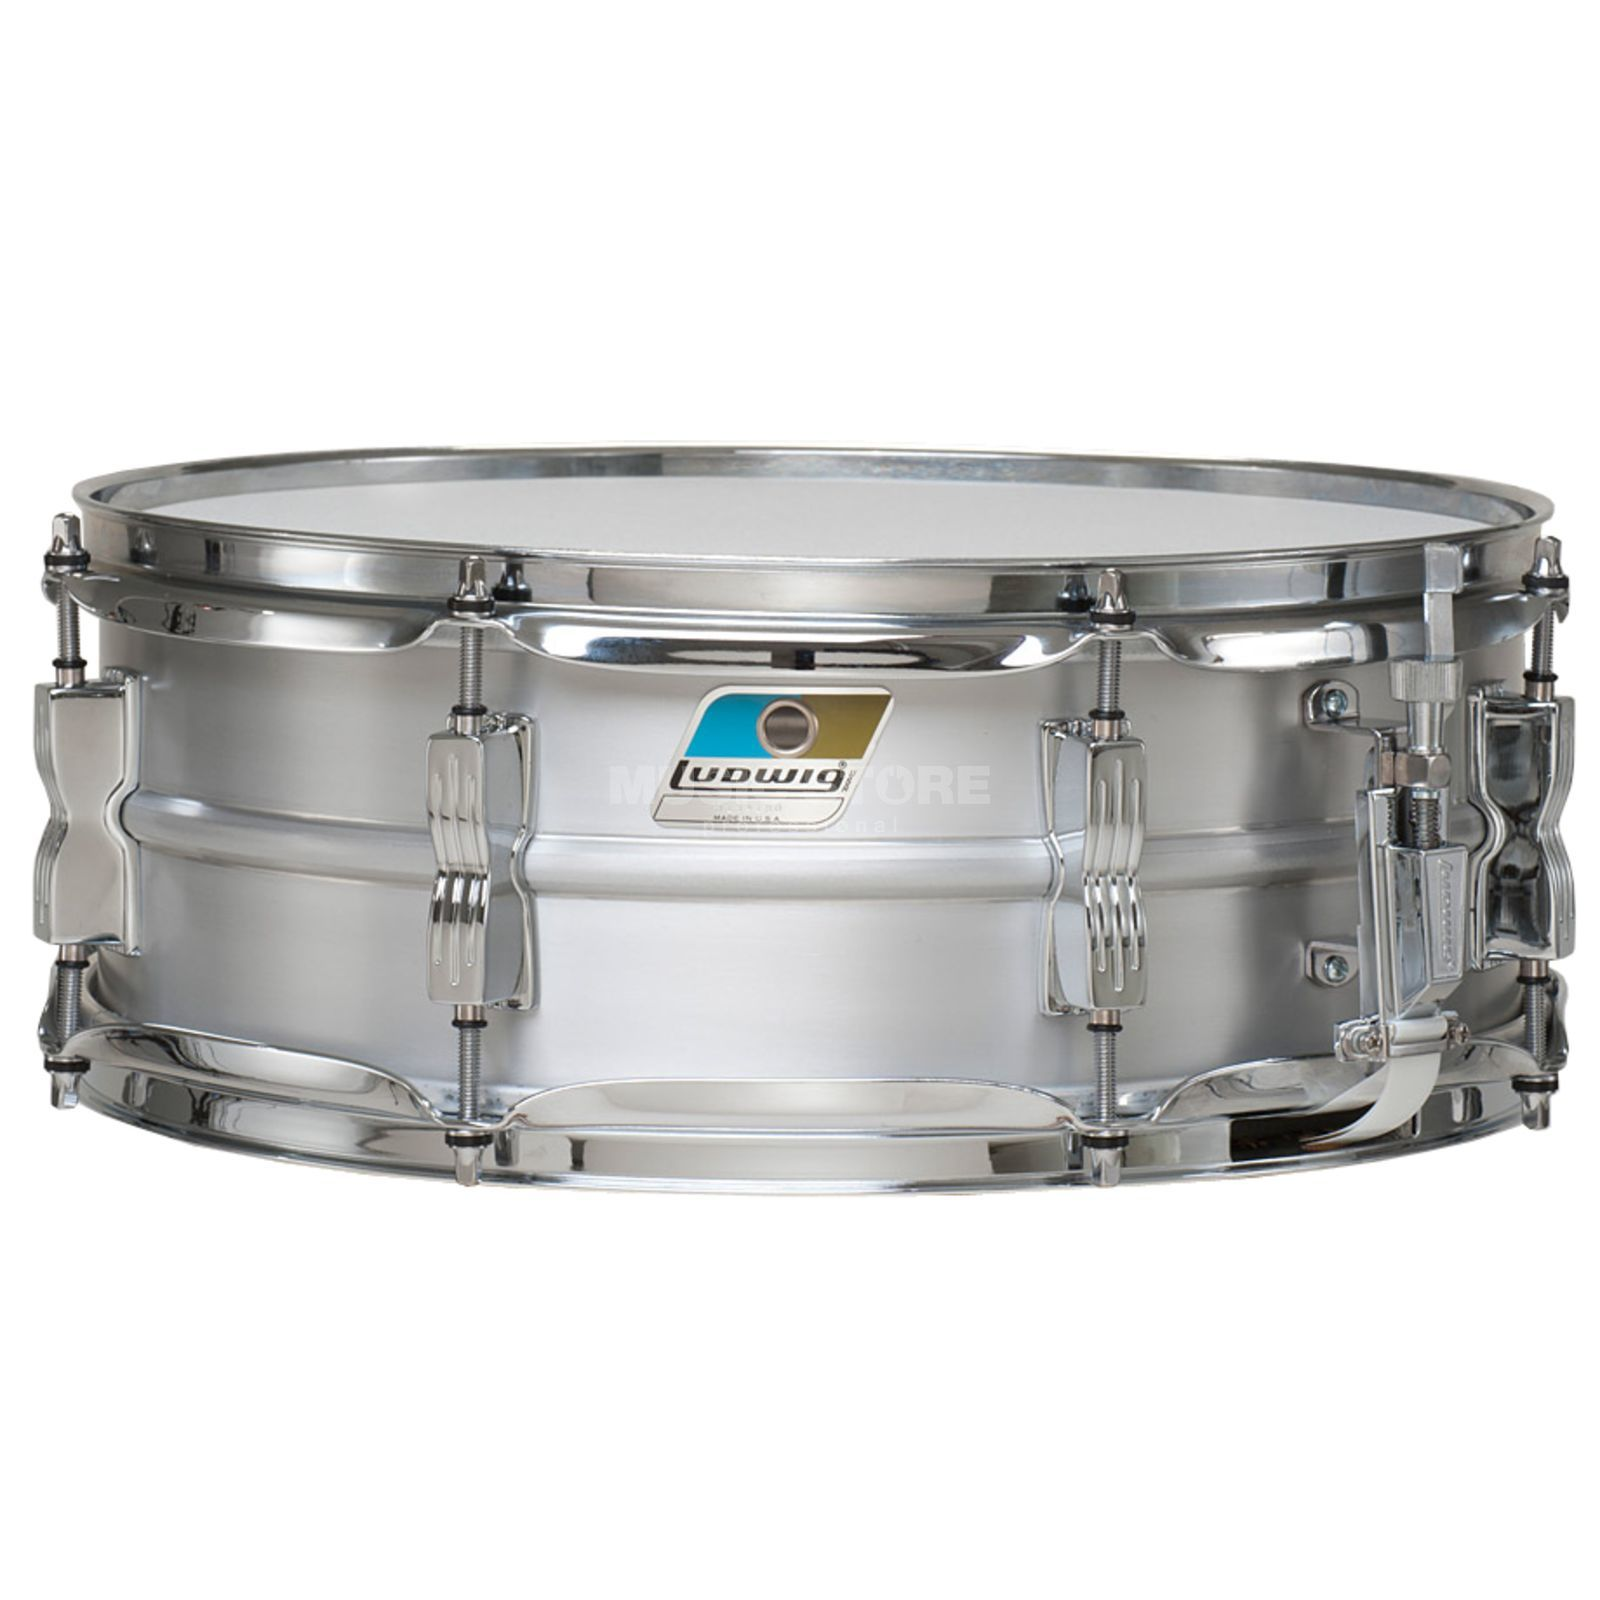 "Ludwig Acrolite Snare Classic LM404C, 14""x5"", Brushed Aluminium Produktbillede"